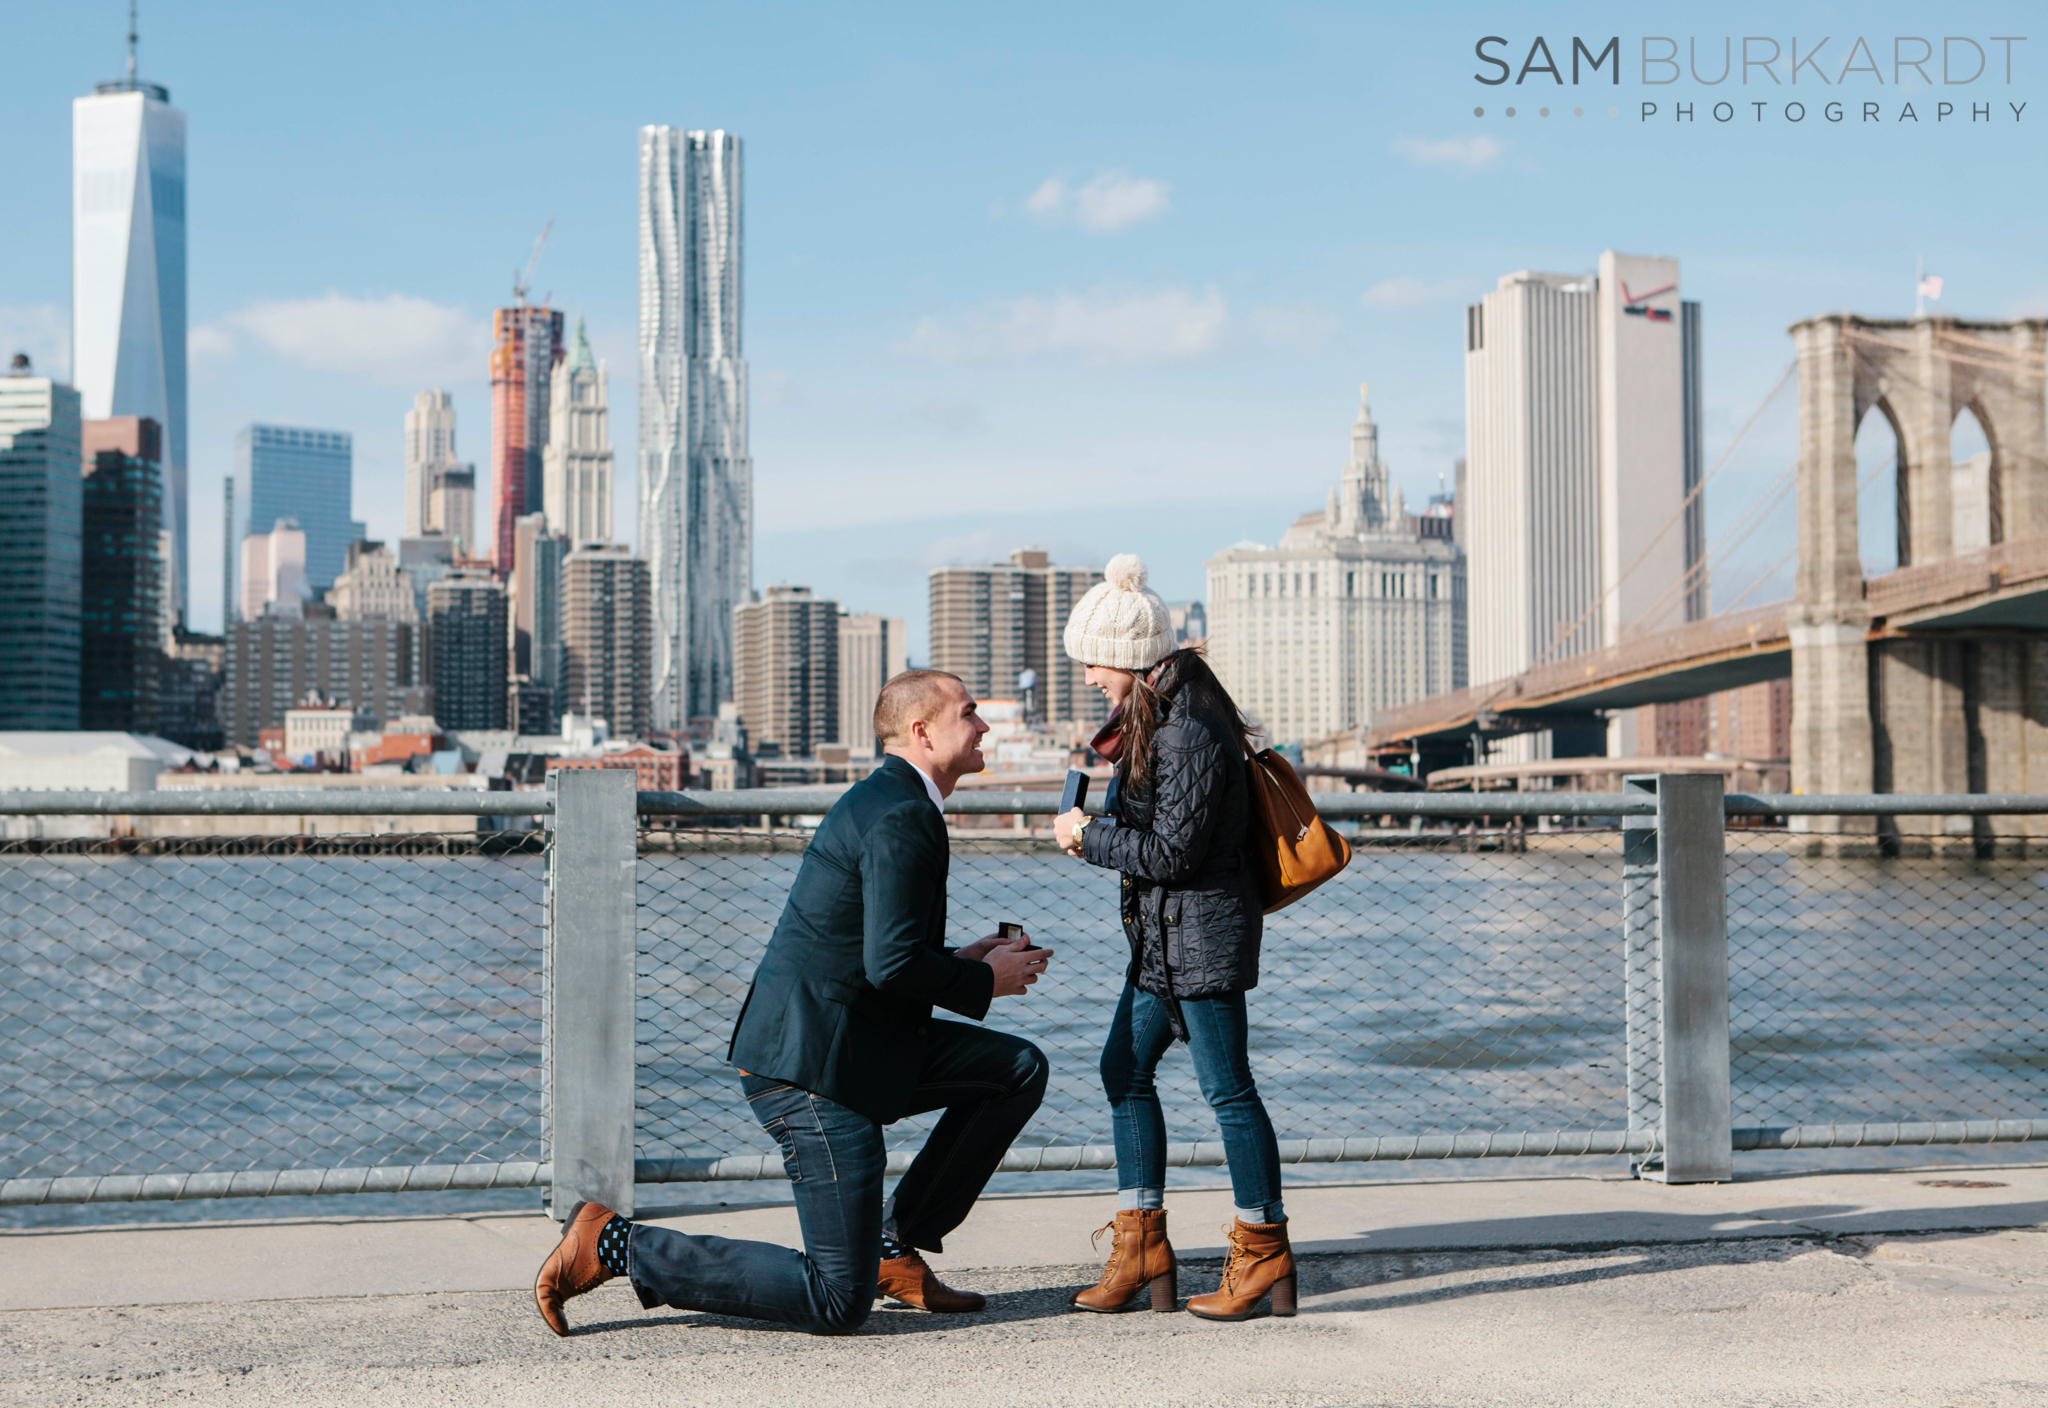 samburkardt_brooklyn_bridge_new_york_engagement_proposal_skyline_0006.jpg